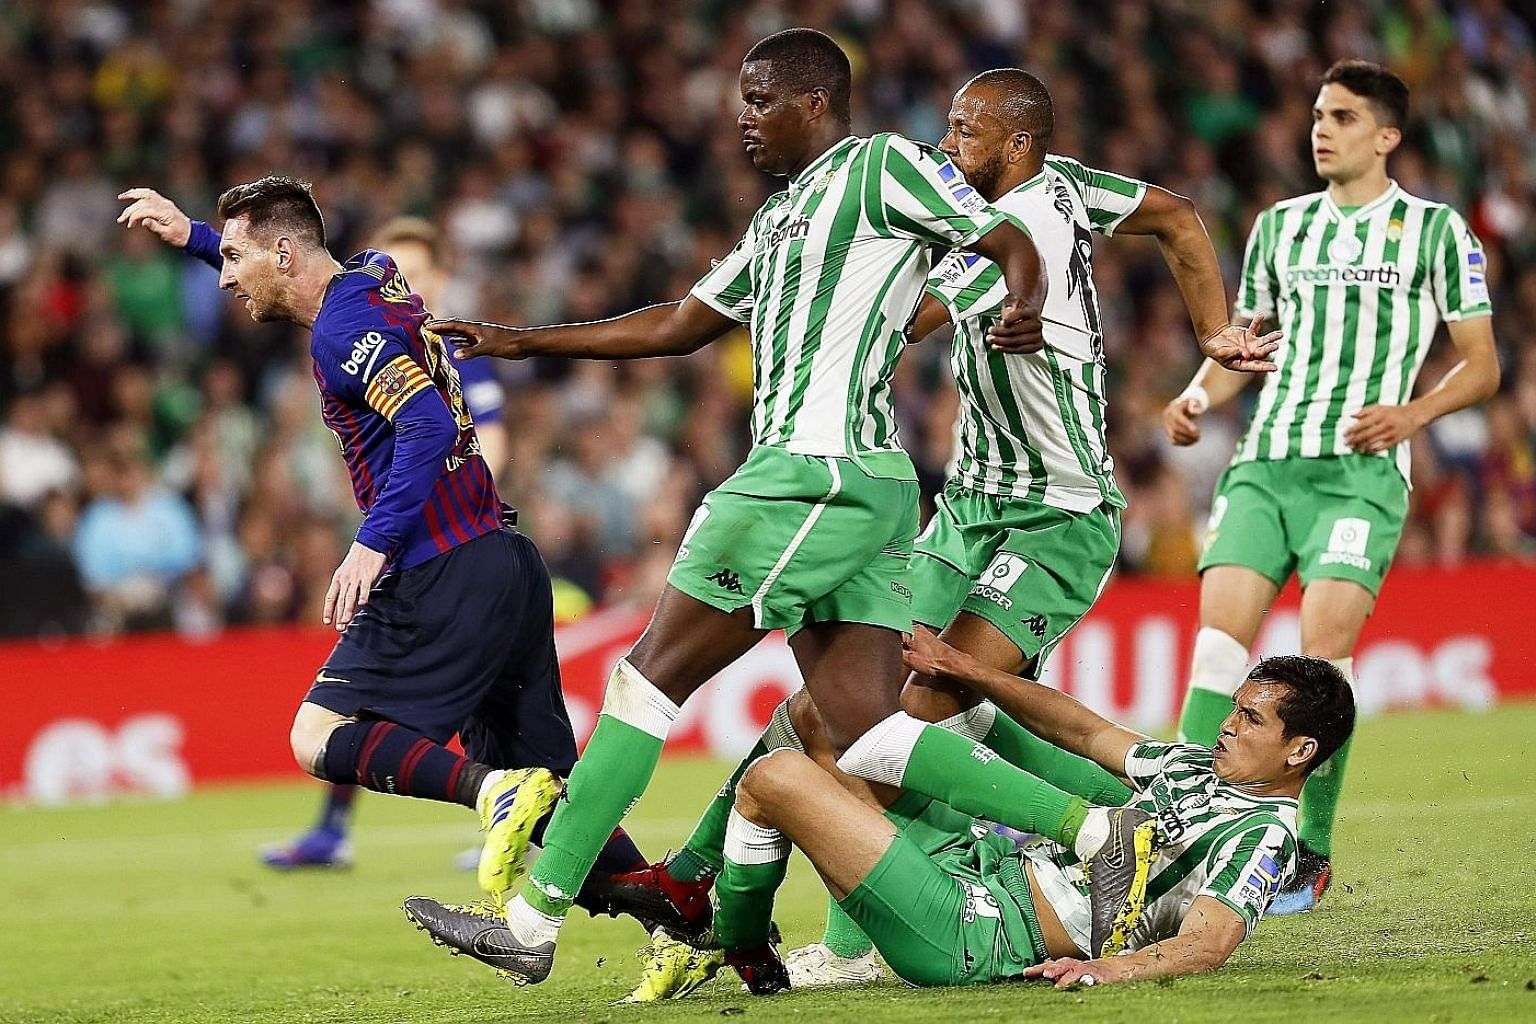 Real Betis defenders could not stop Lionel Messi from his scrumptious hat-trick in a 4-1 win, leaving Barcelona 10 points clear atop LaLiga.